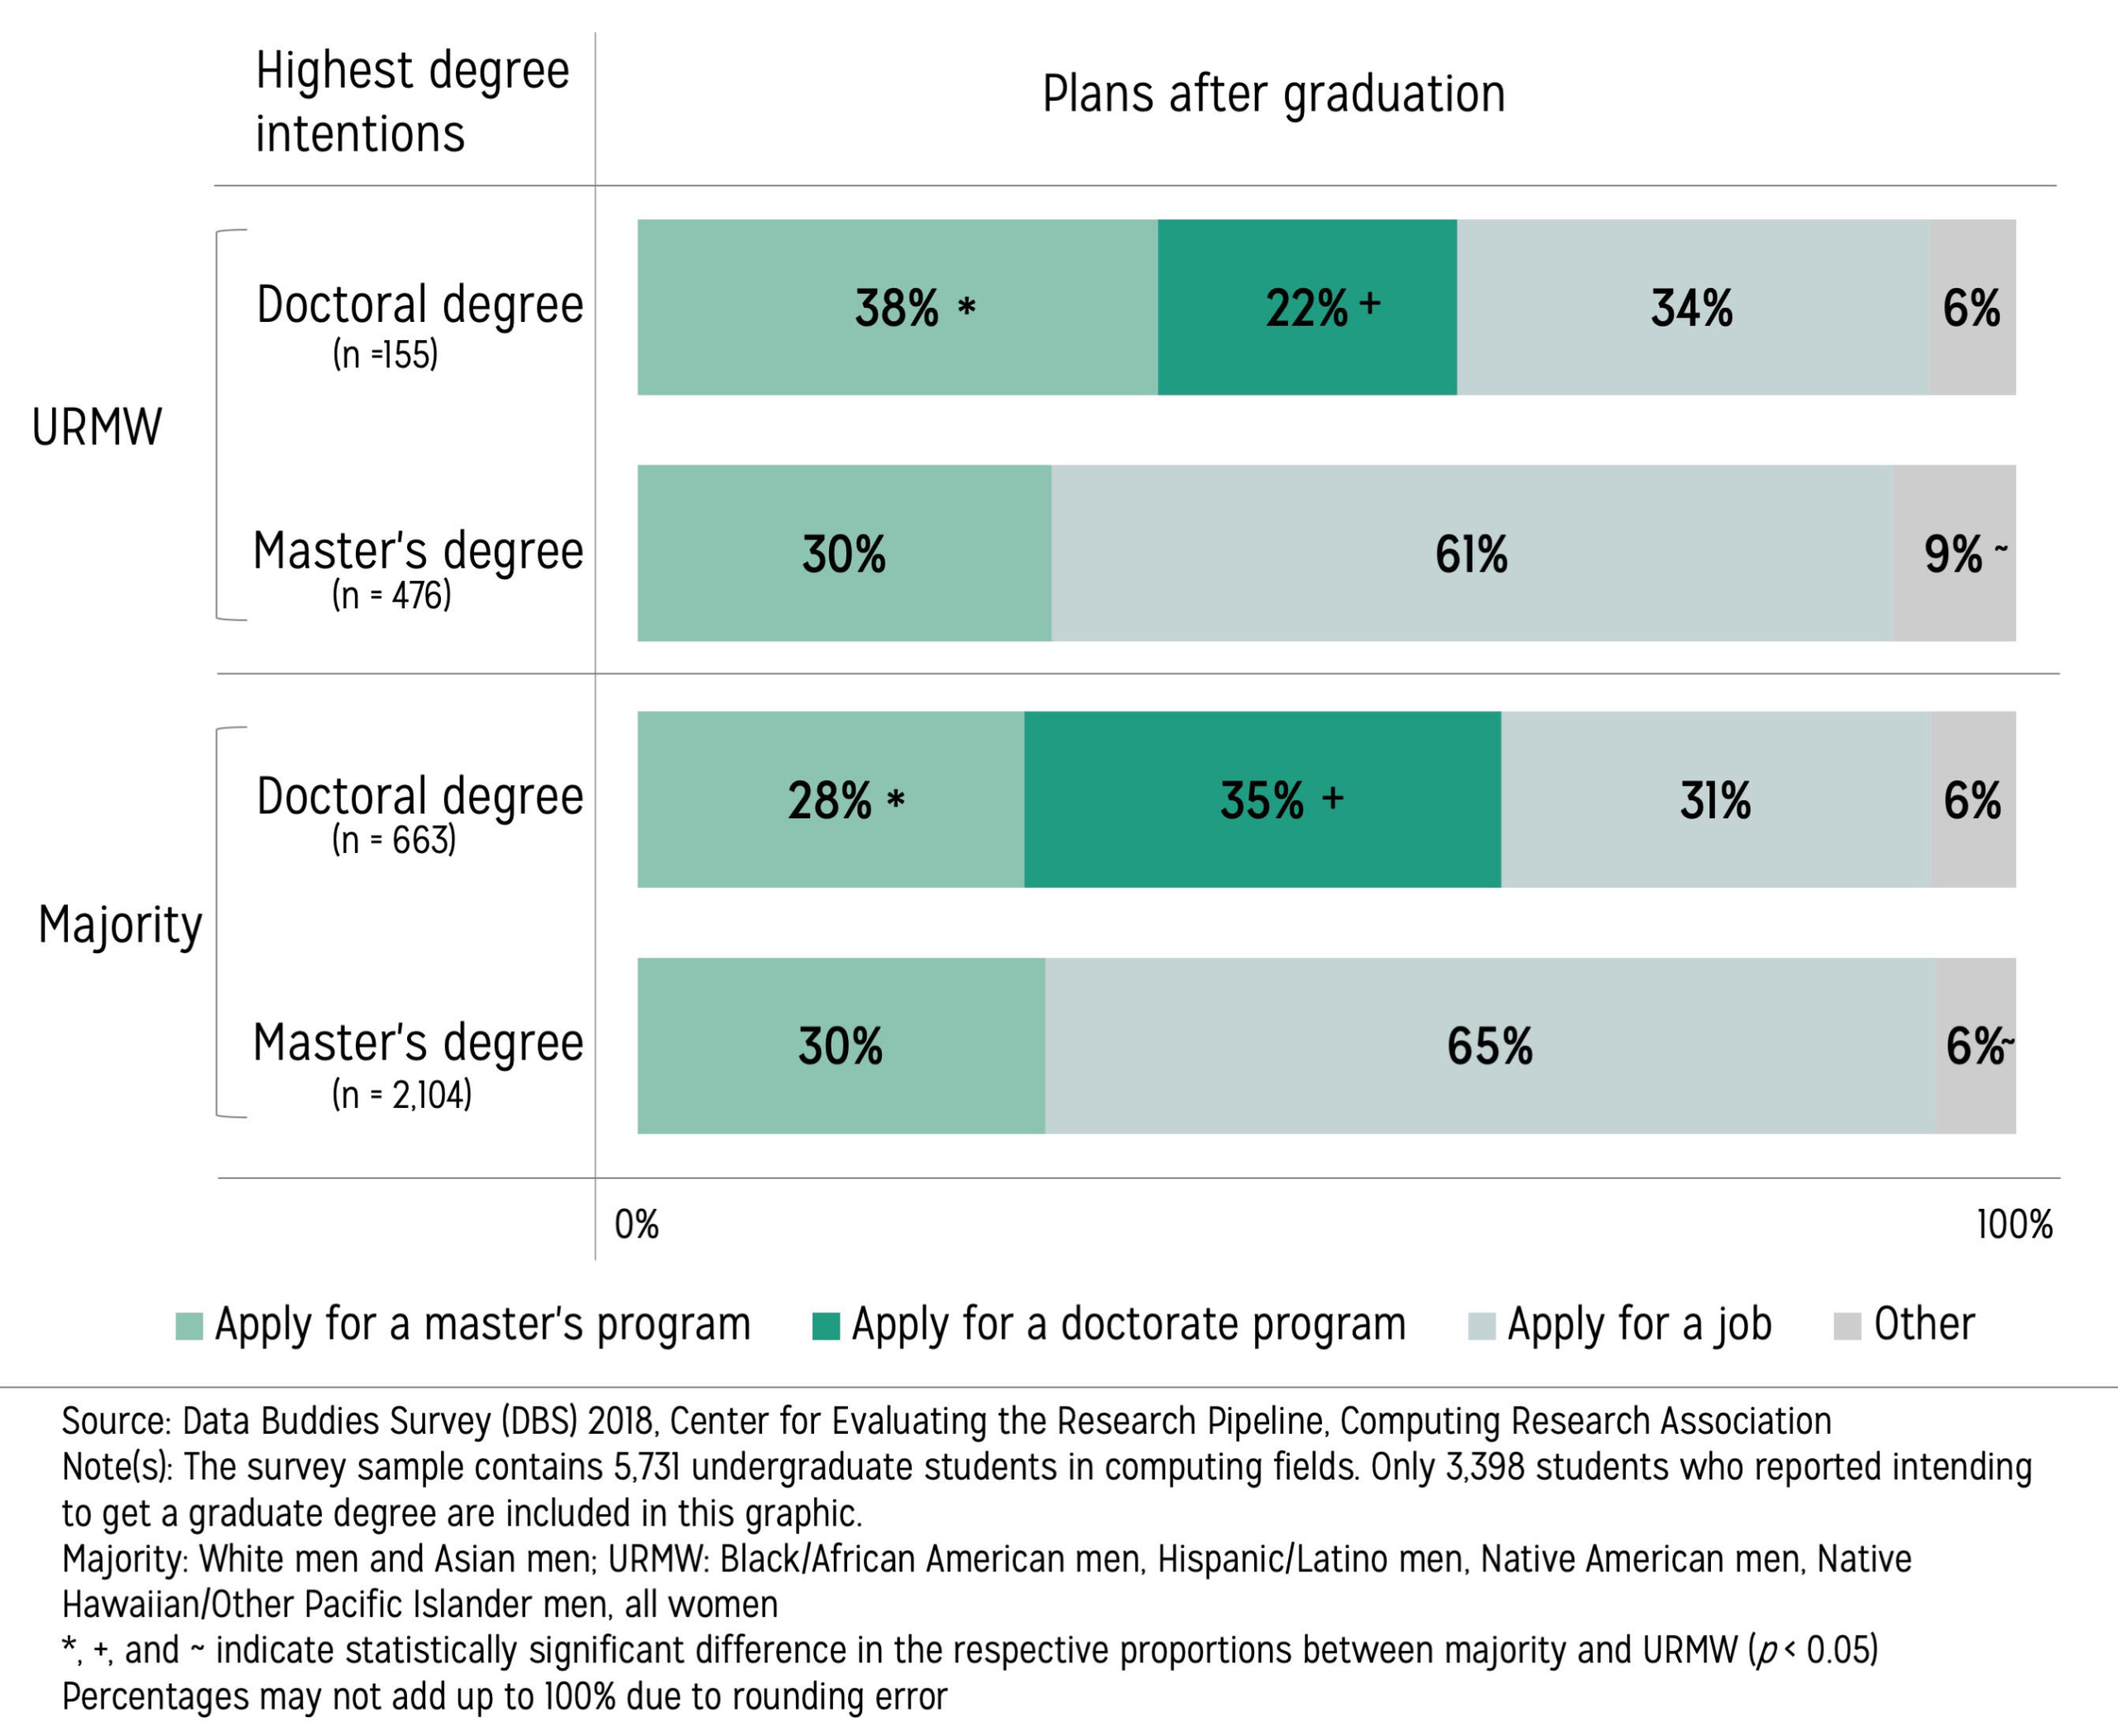 Horizontal bars showing percentages of undergraduate students' immediate plans after graduation by their highest degree intentions and underrepresented minority status.